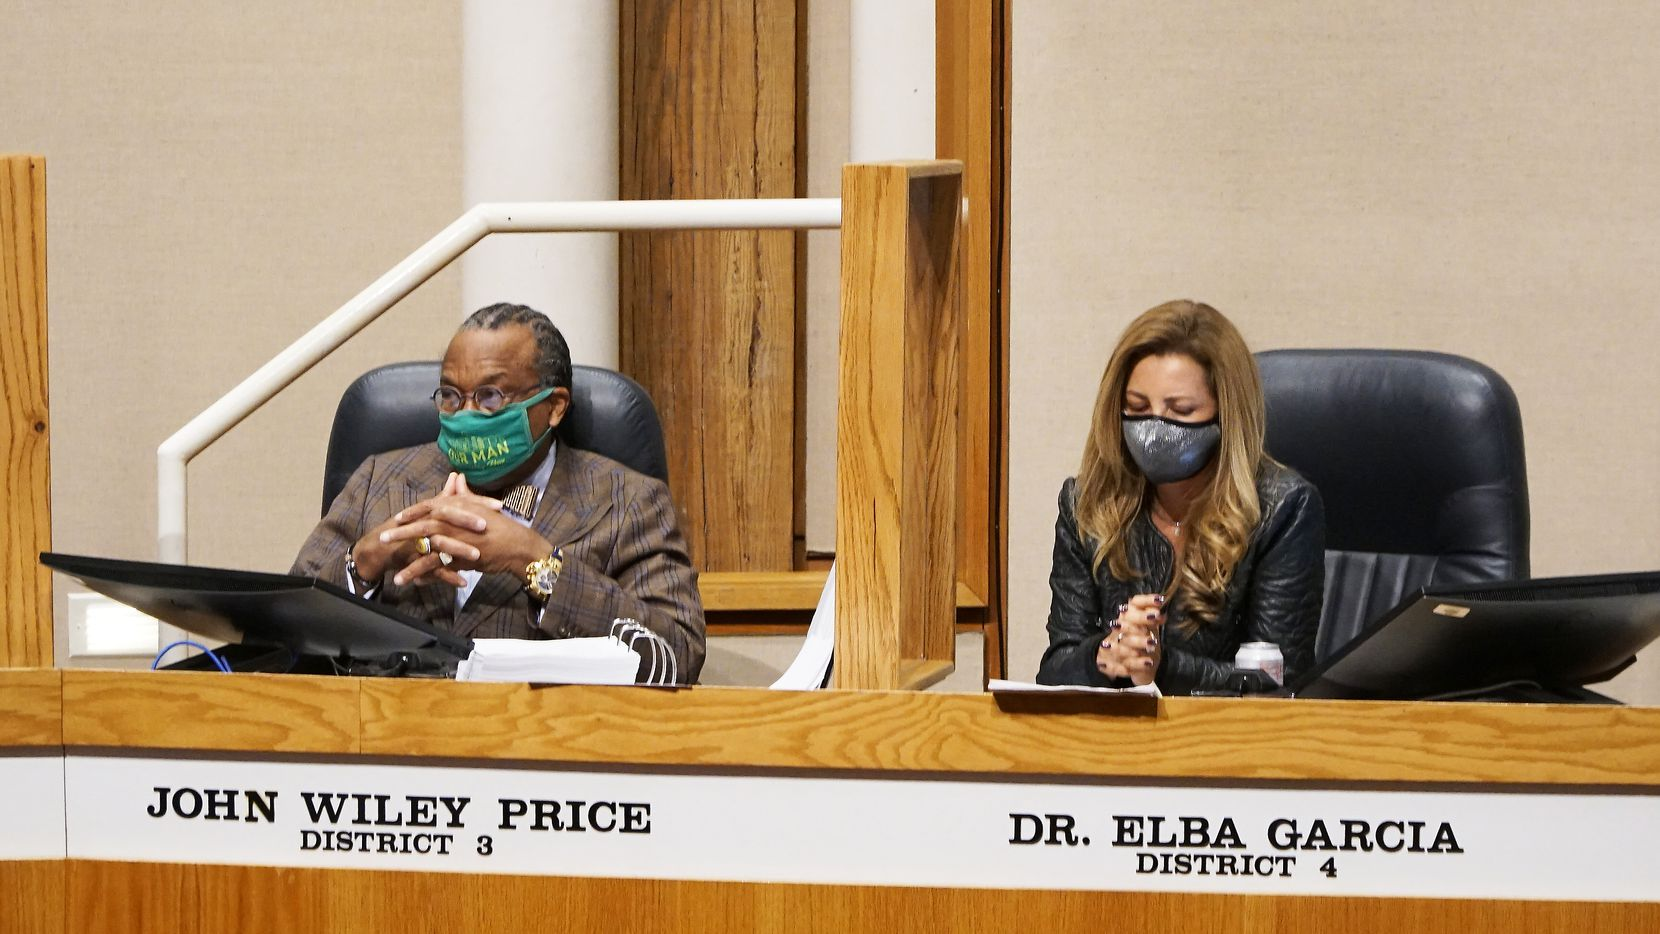 Dallas County Commissioners John Wiley Price and Dr. Elba Garcia met for their regular bimonthly meeting Jan. 5, 2021. Among the topics was COVID-19 vaccinations. Both county commissioners expressed concern over public messaging on the availability of the vaccine.  (Lawrence Jenkins/Special Contributor)